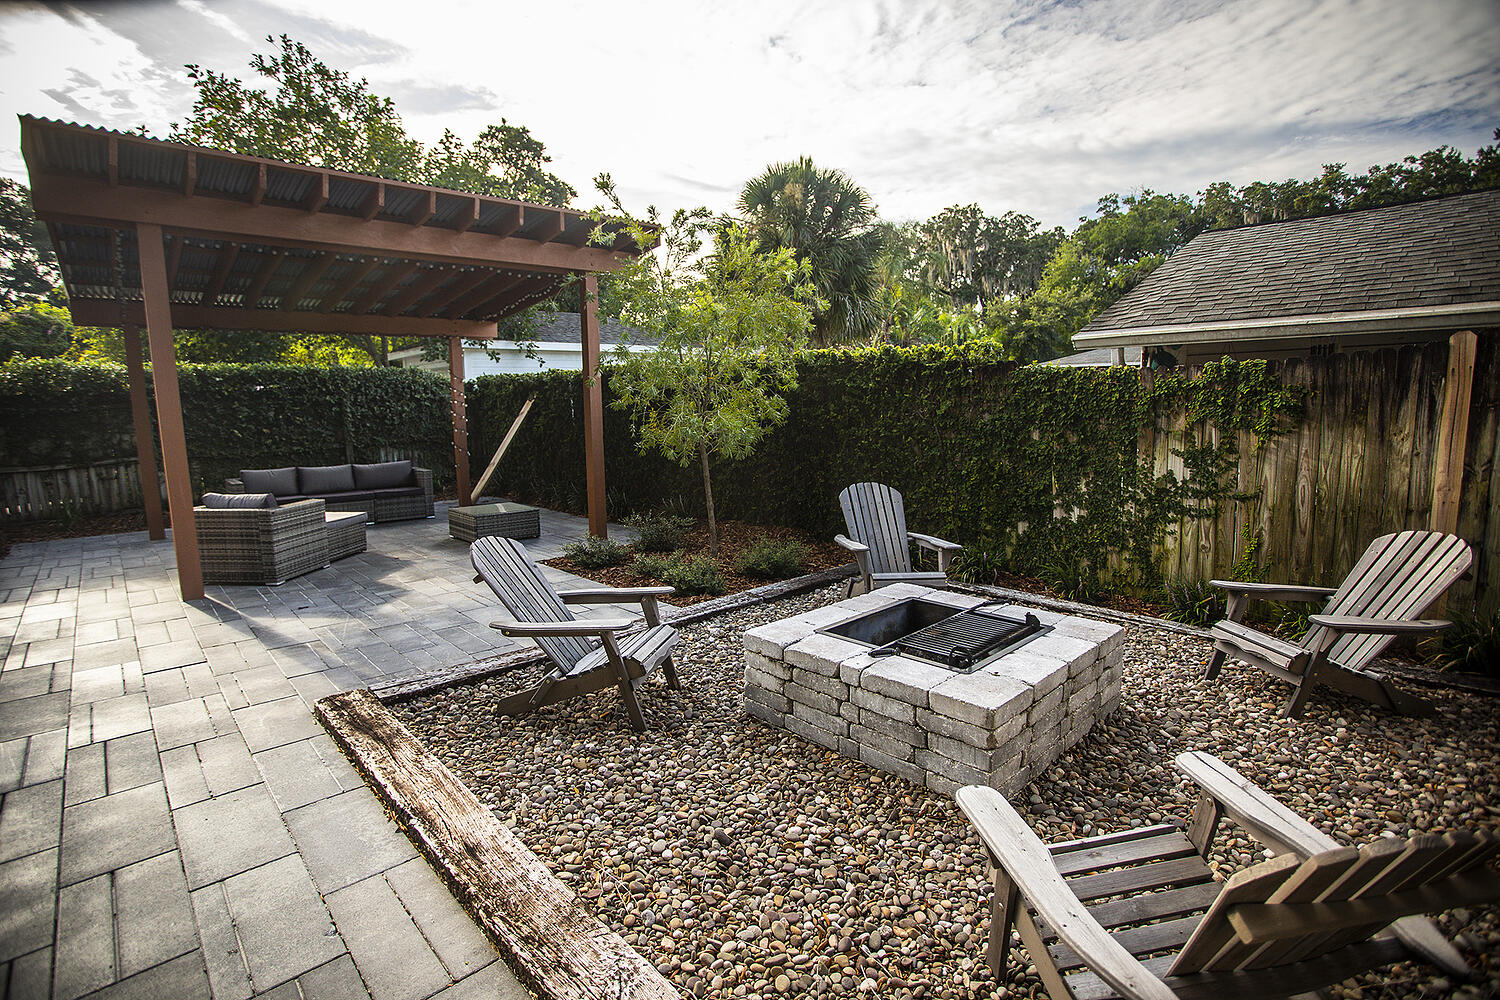 Patio with seating and fire pit